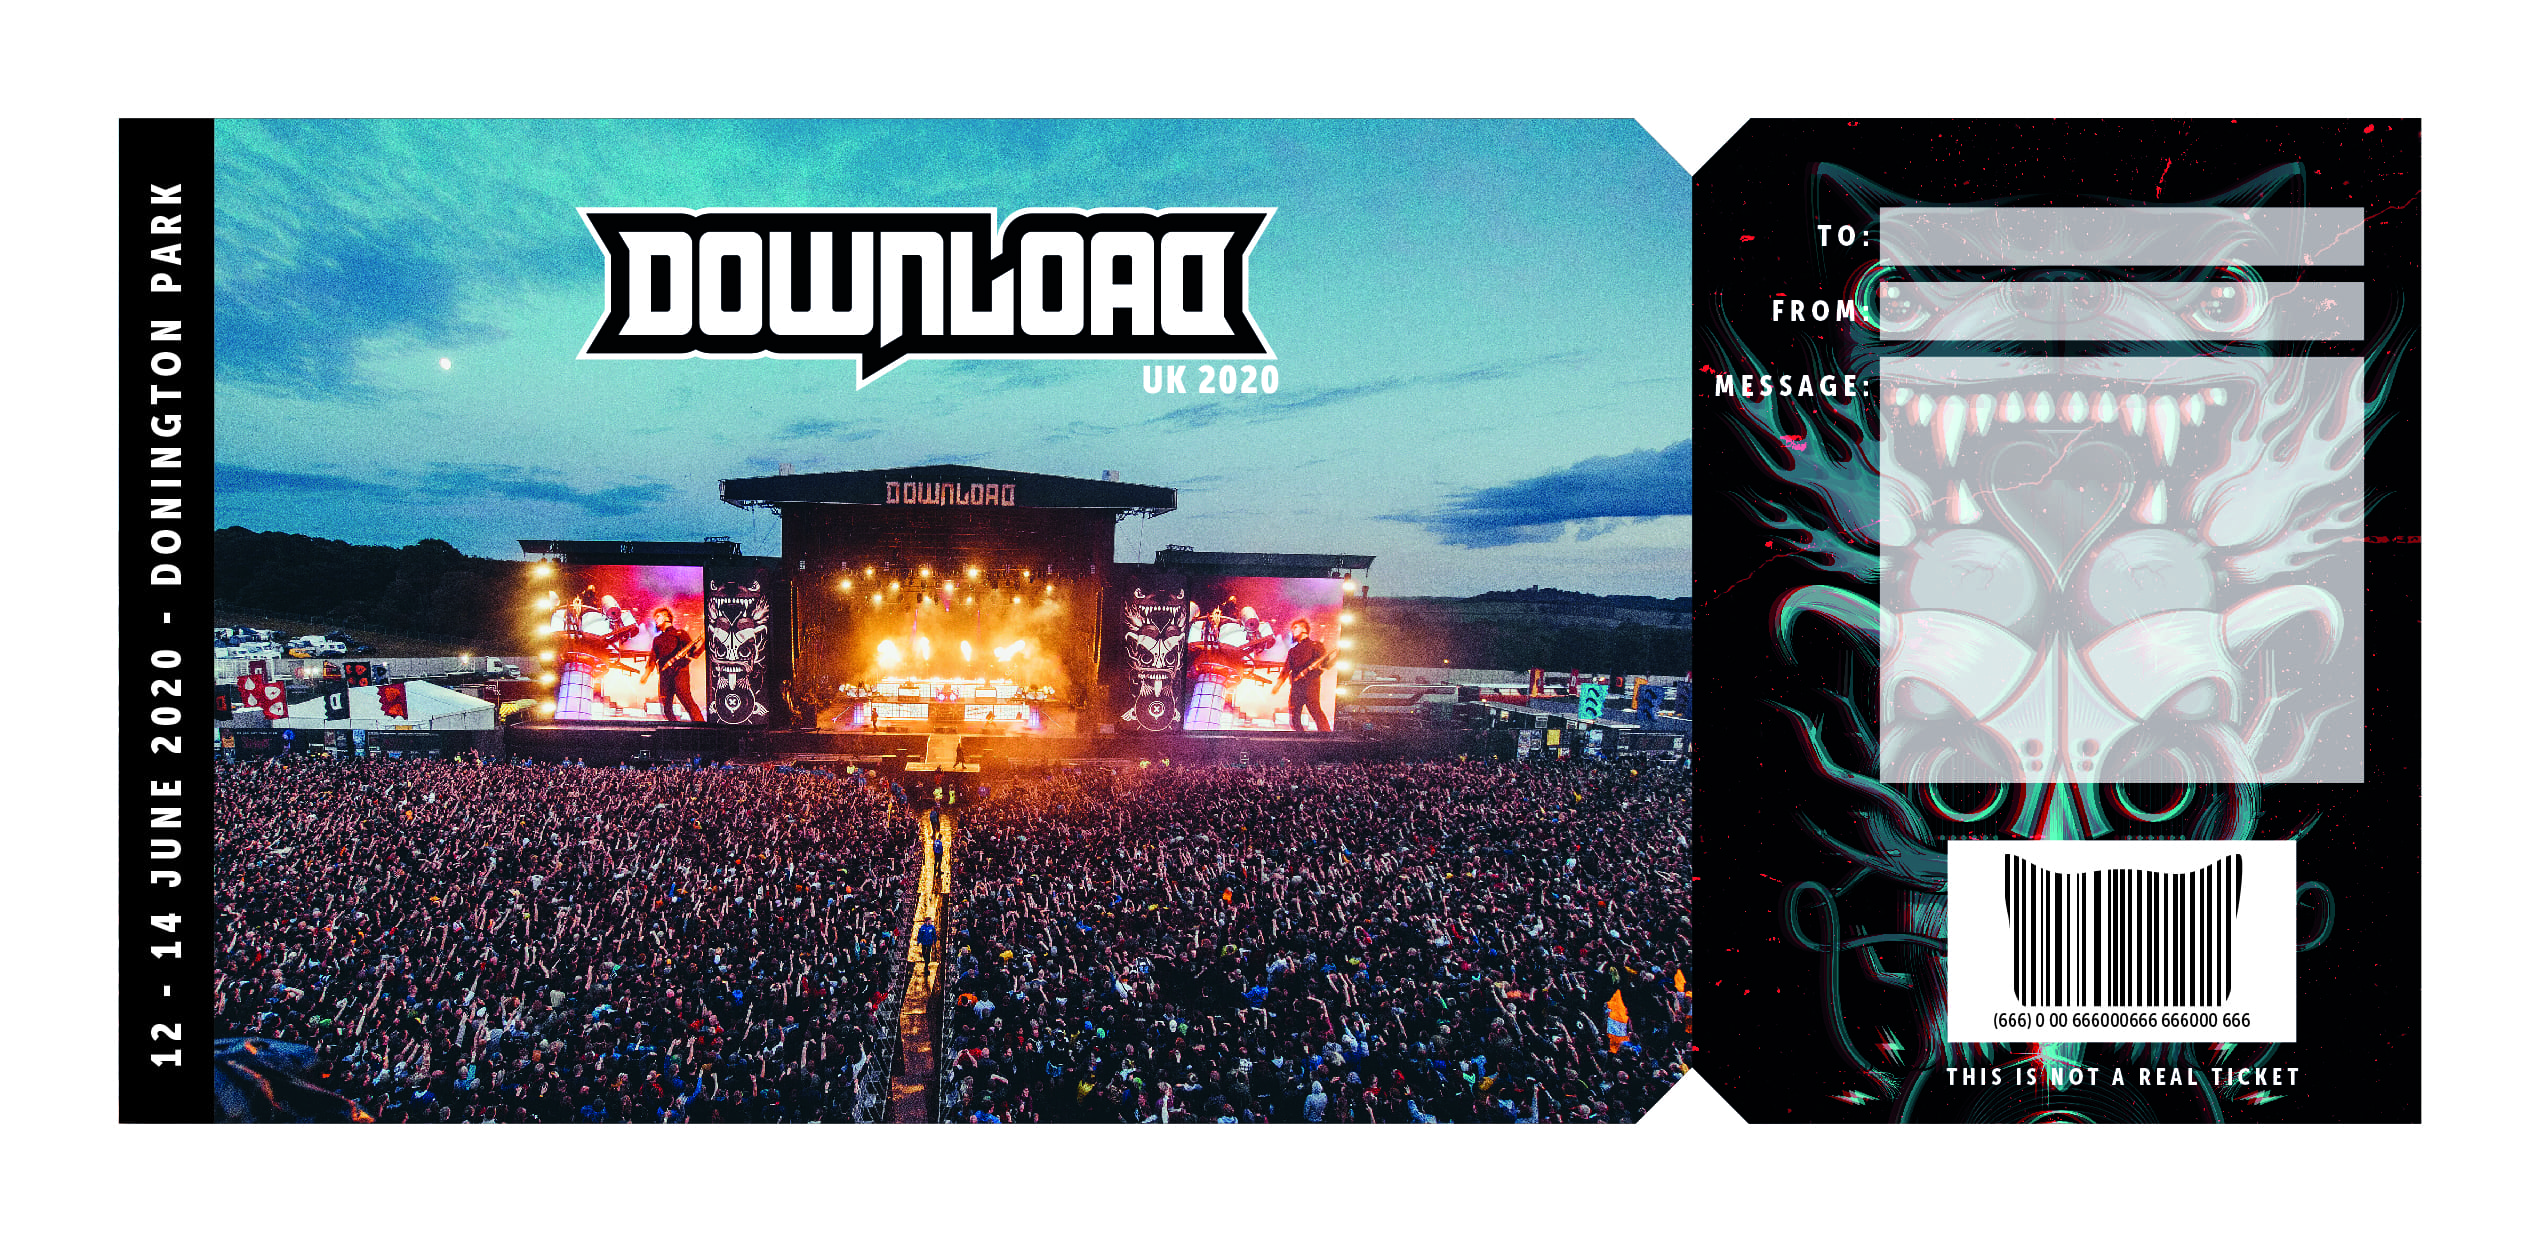 Download Festival | The #DL2020 Gift Certificate is now